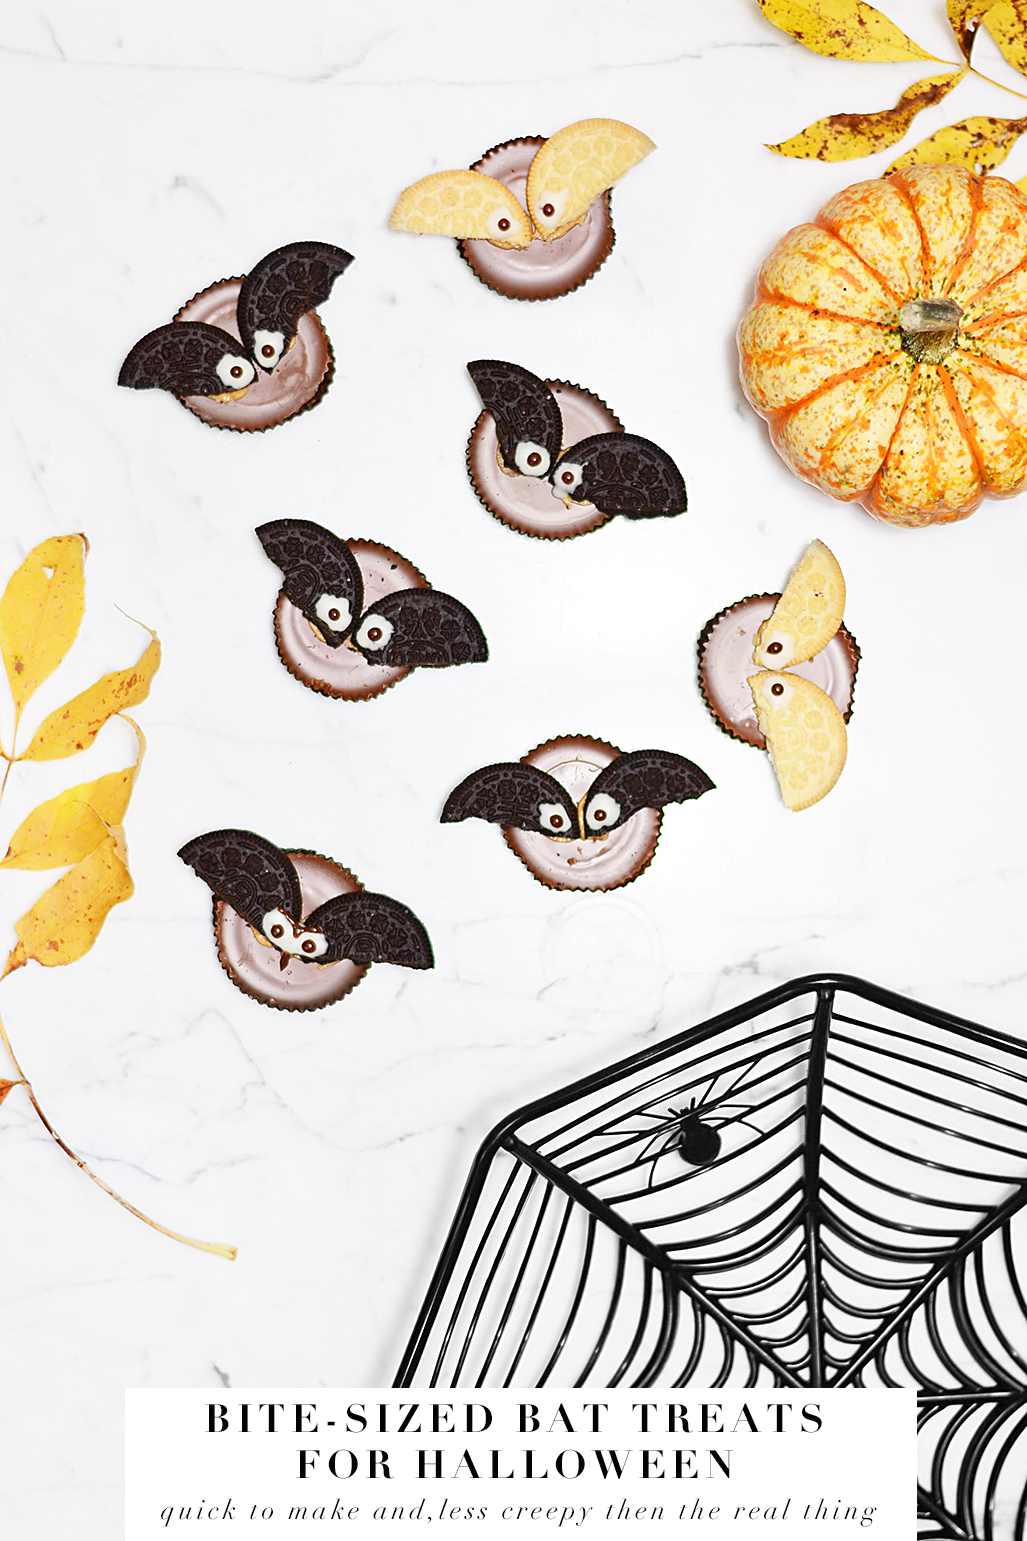 LAST MINUTE HALLOWEEN BAT TREATS